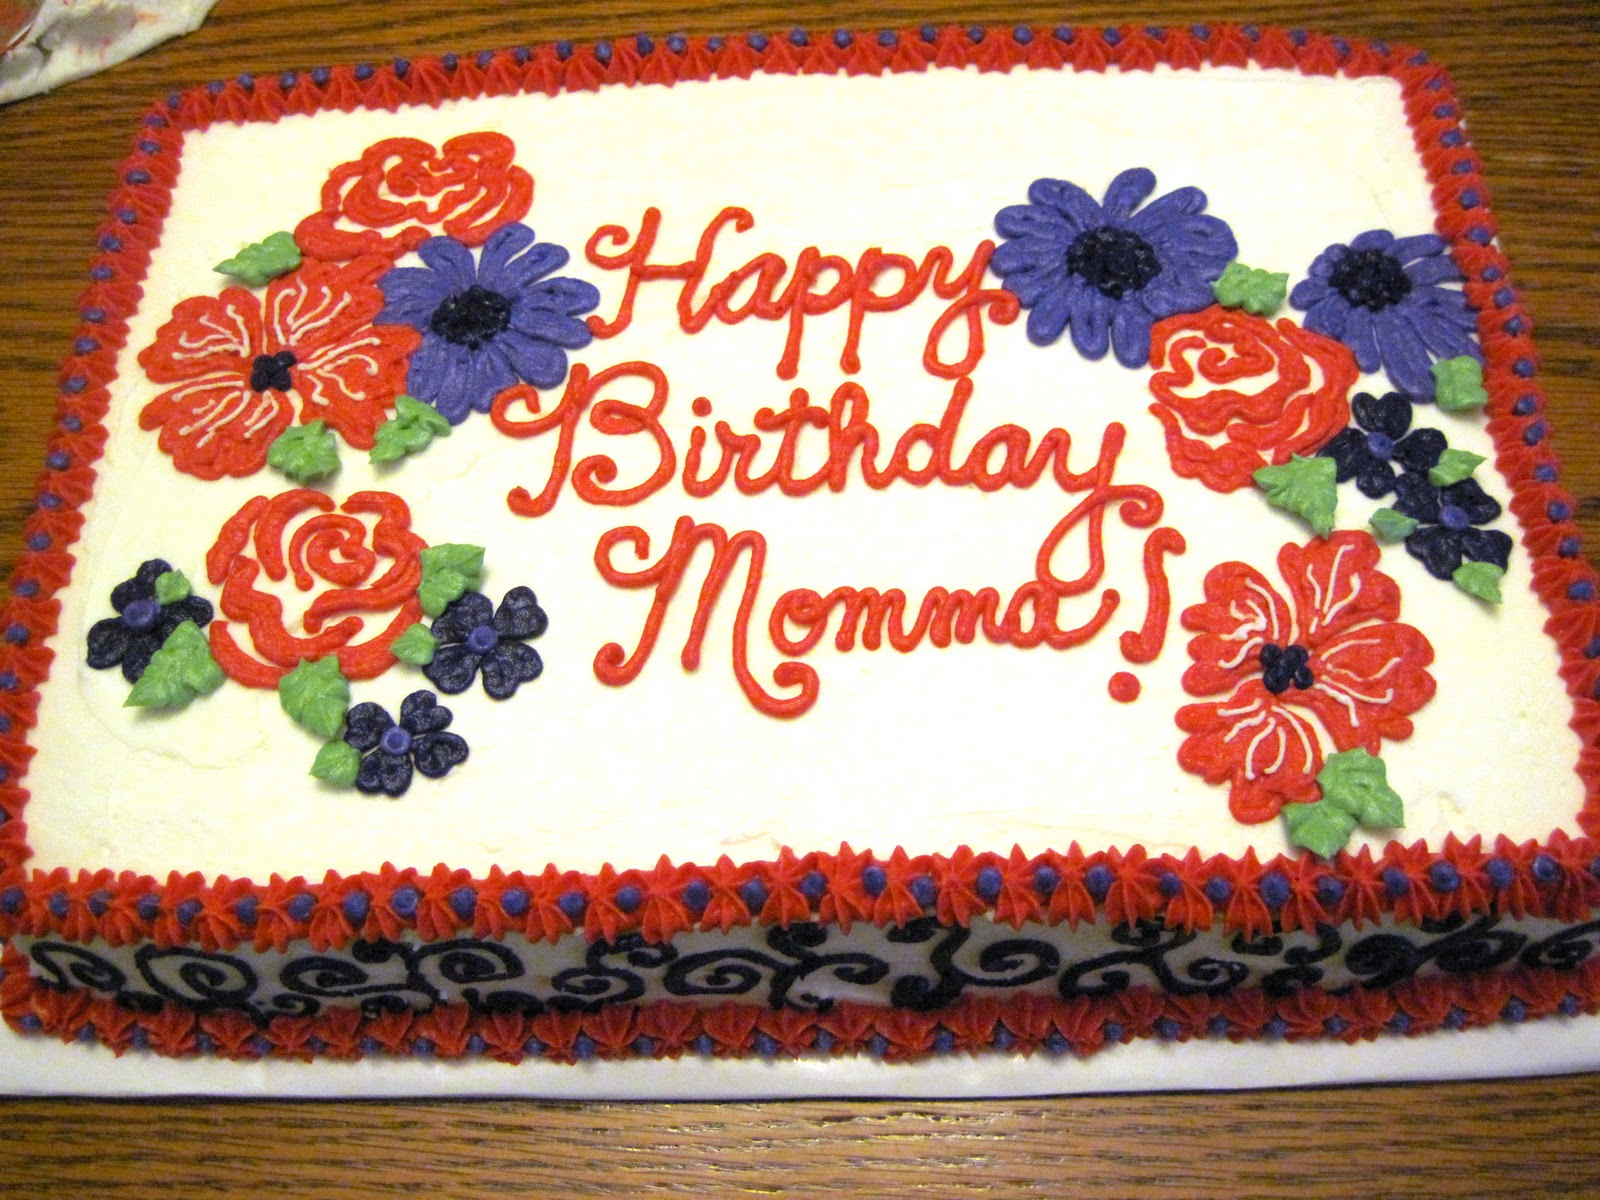 Erins custom cakes red and purple flowers birthday cake i did red and purple flowers with a swirl pattern on the sides simple and pretty but not something that would look like it was meant for the christmas izmirmasajfo